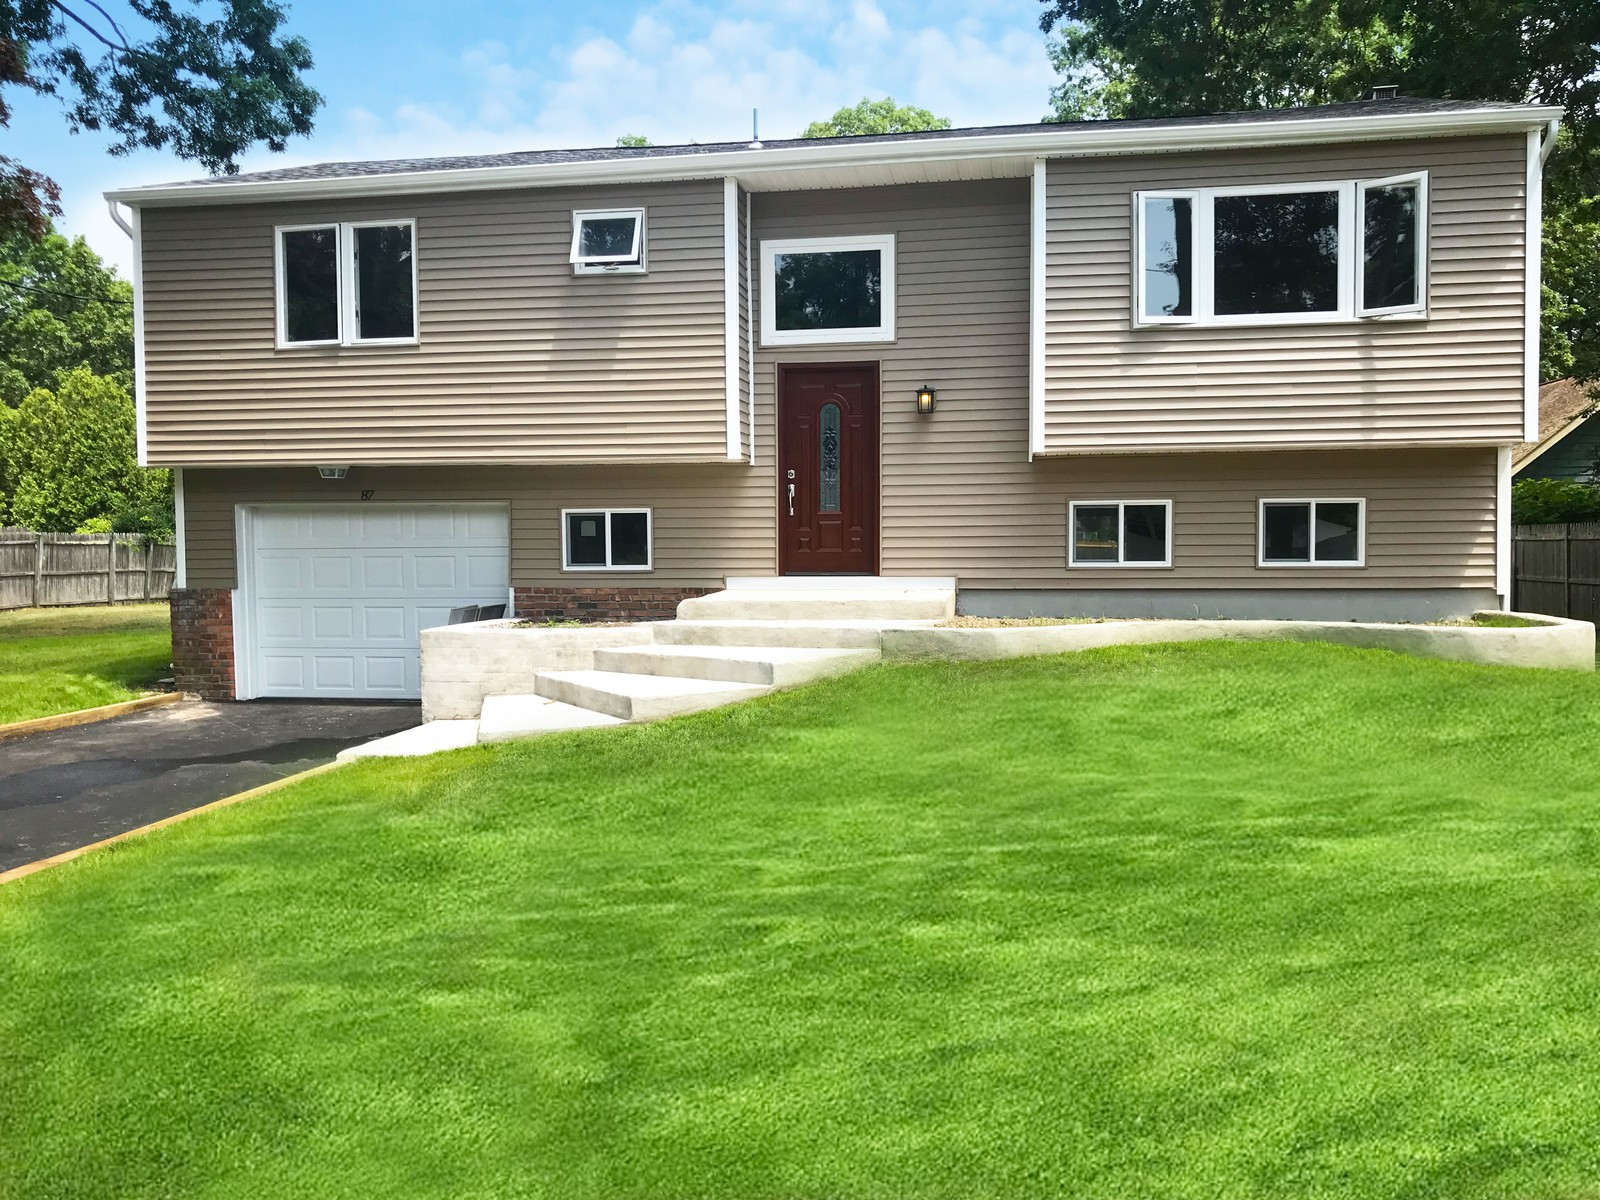 Single Family Homes for Sale at Bellport 87 Circuit Rd Bellport, New York 11713 United States